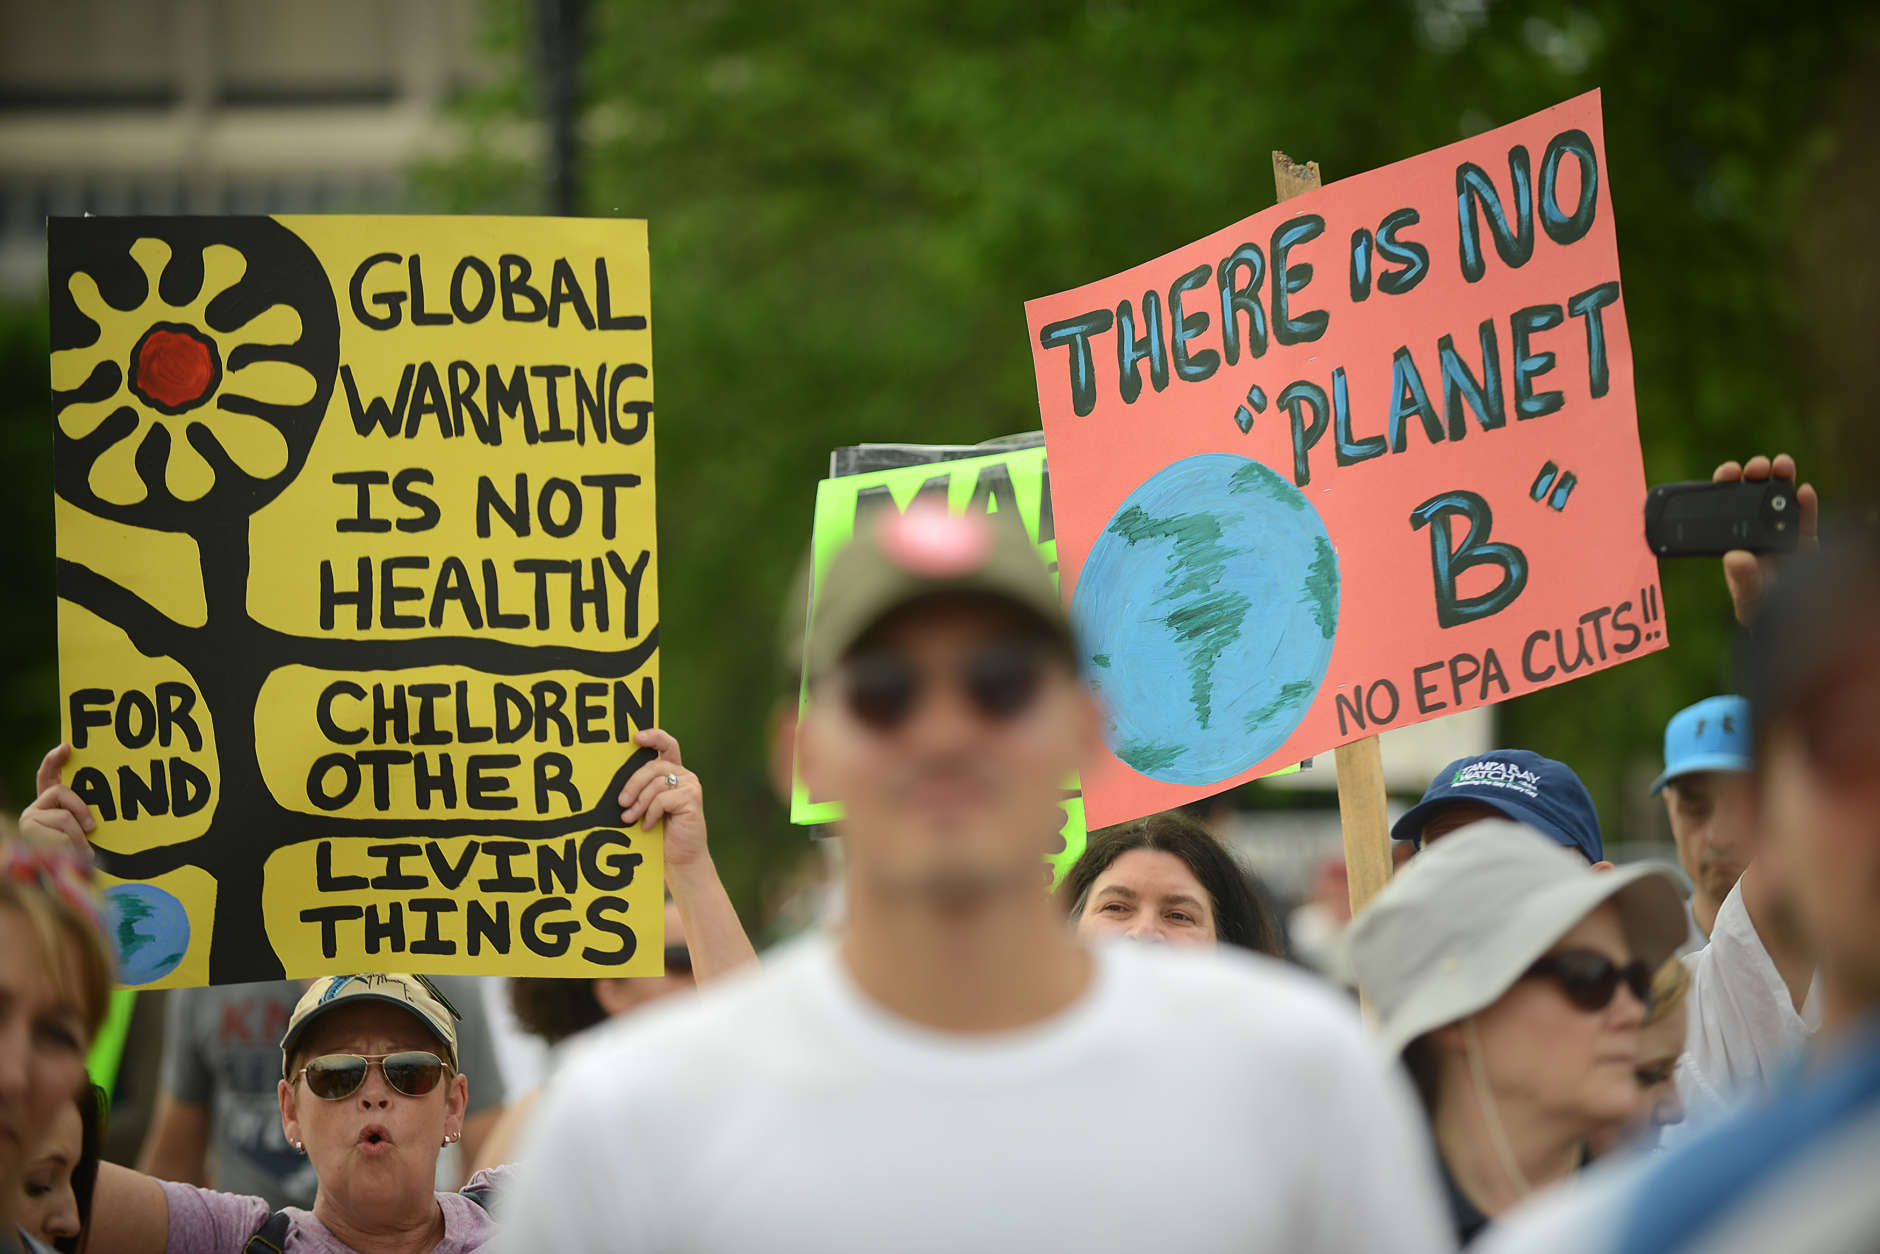 Thousands of people across the U.S. marched Saturday on President Donald Trump's 100th day in office to demand action on climate change. (Photo by Astrid Riecken/Getty Images)